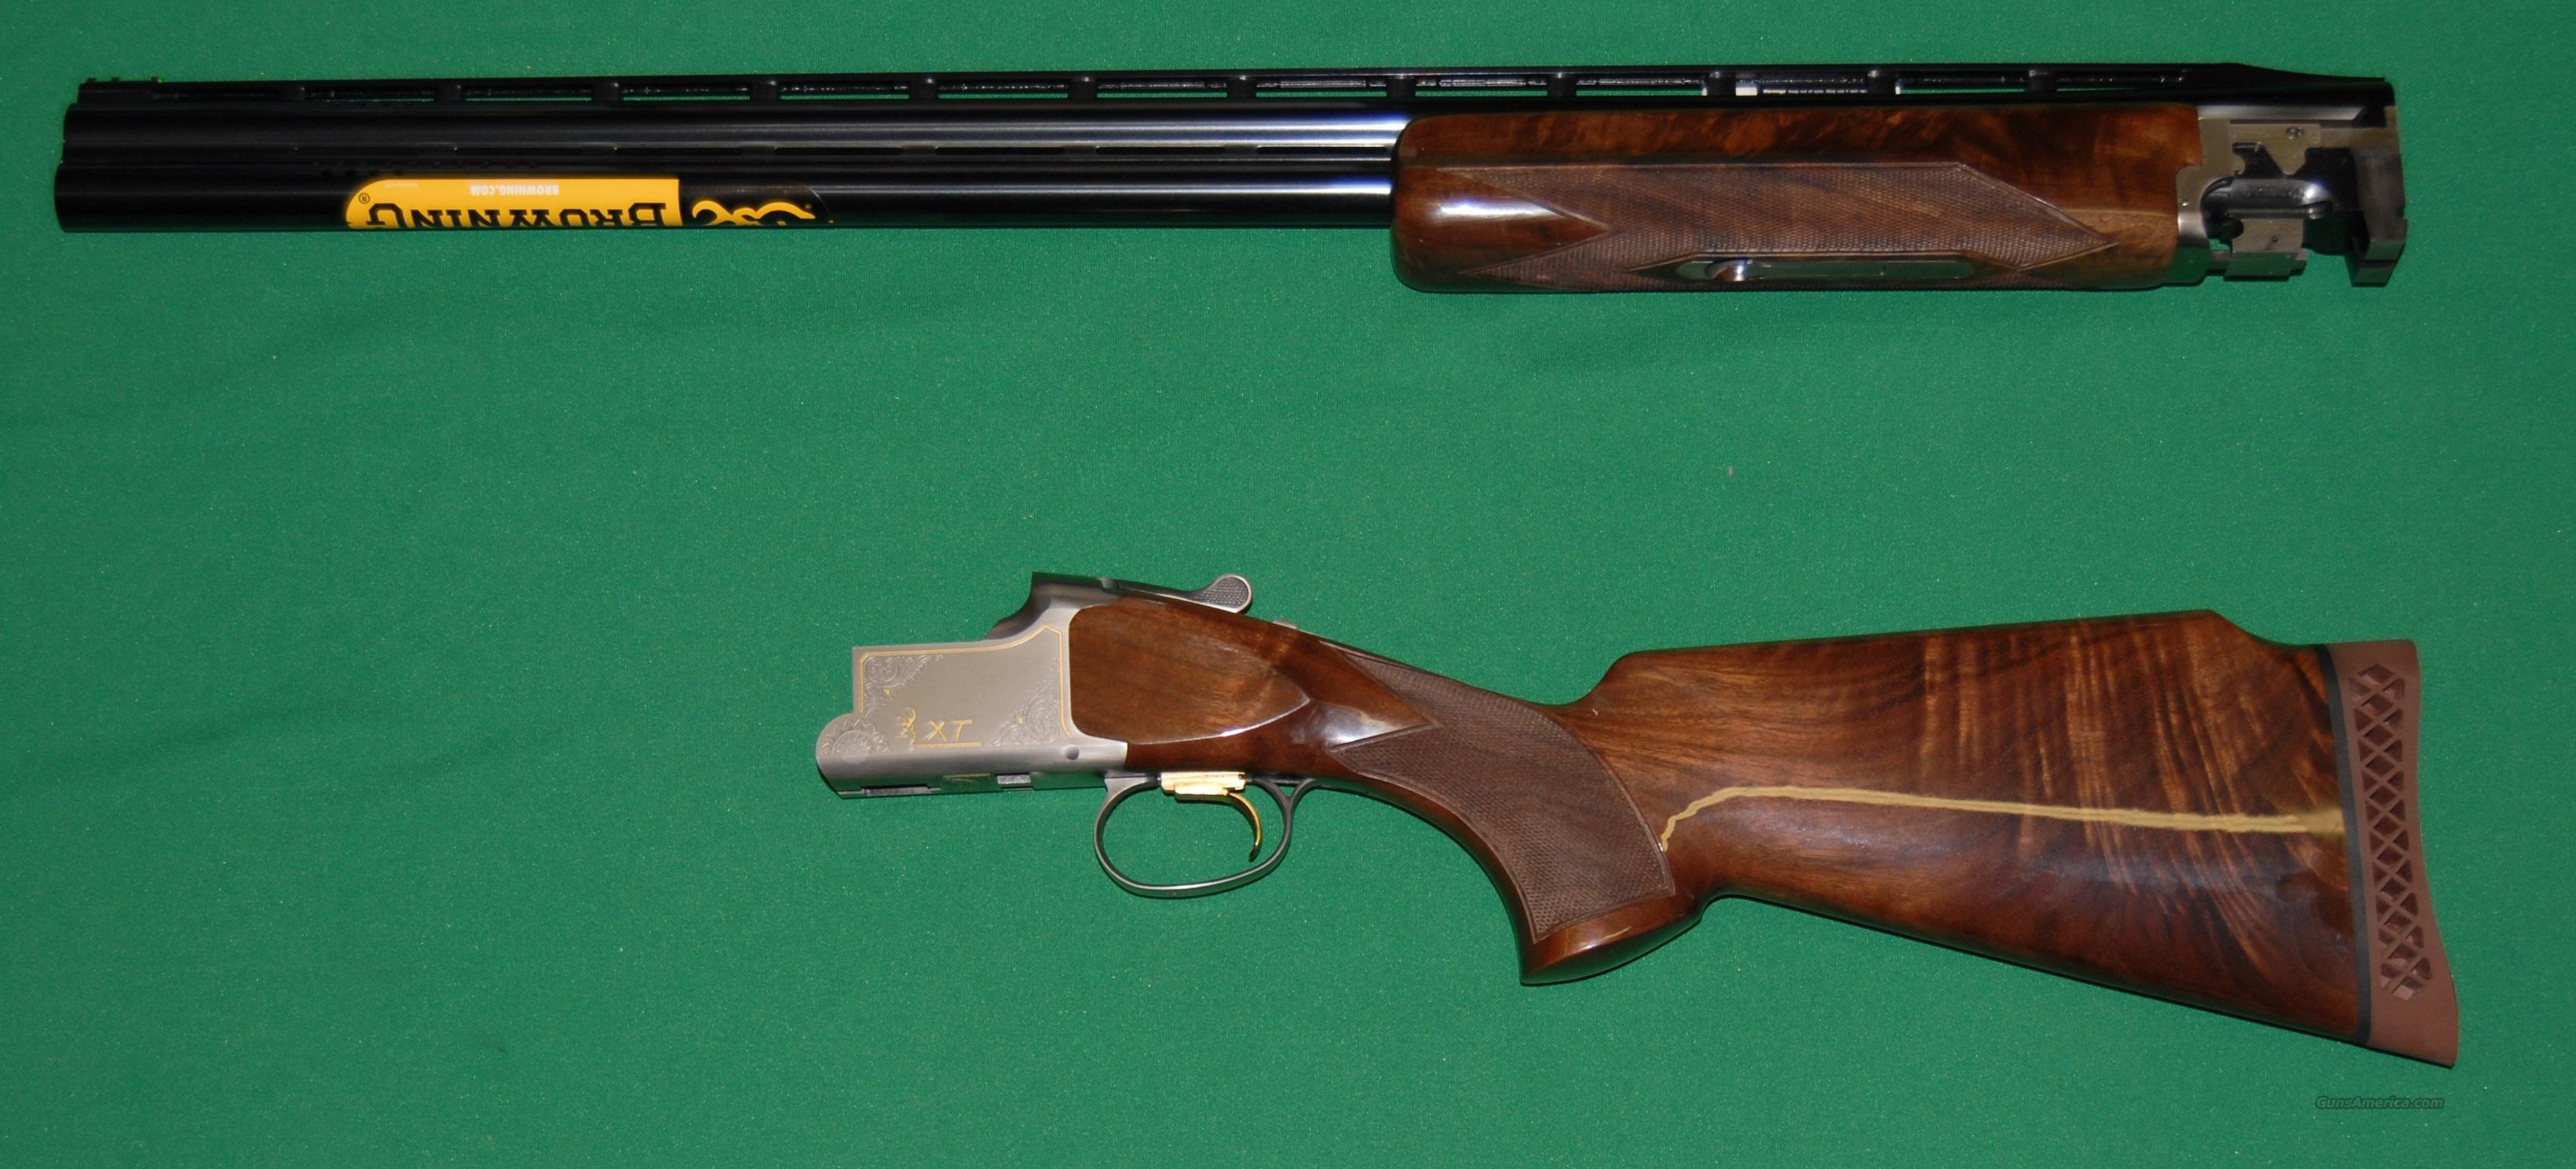 Browning Citori XT Trap, 12 Gauge, New in Box  Guns > Shotguns > Browning Shotguns > Over Unders > Citori > Trap/Skeet